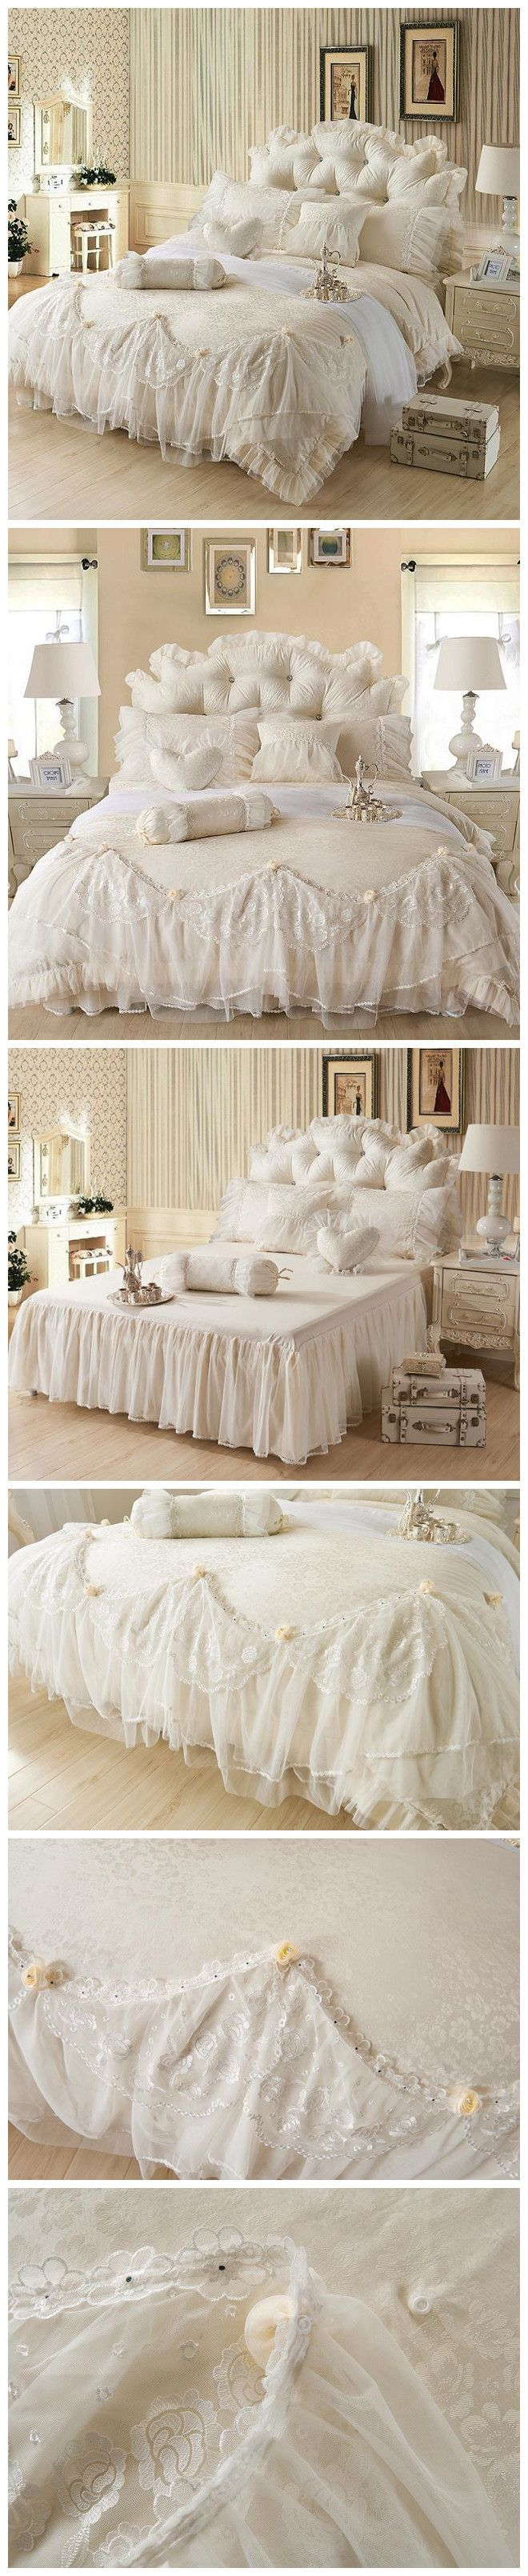 Walmart Queen Bed Sets | Queen Bedding Sets | Grey Comforters